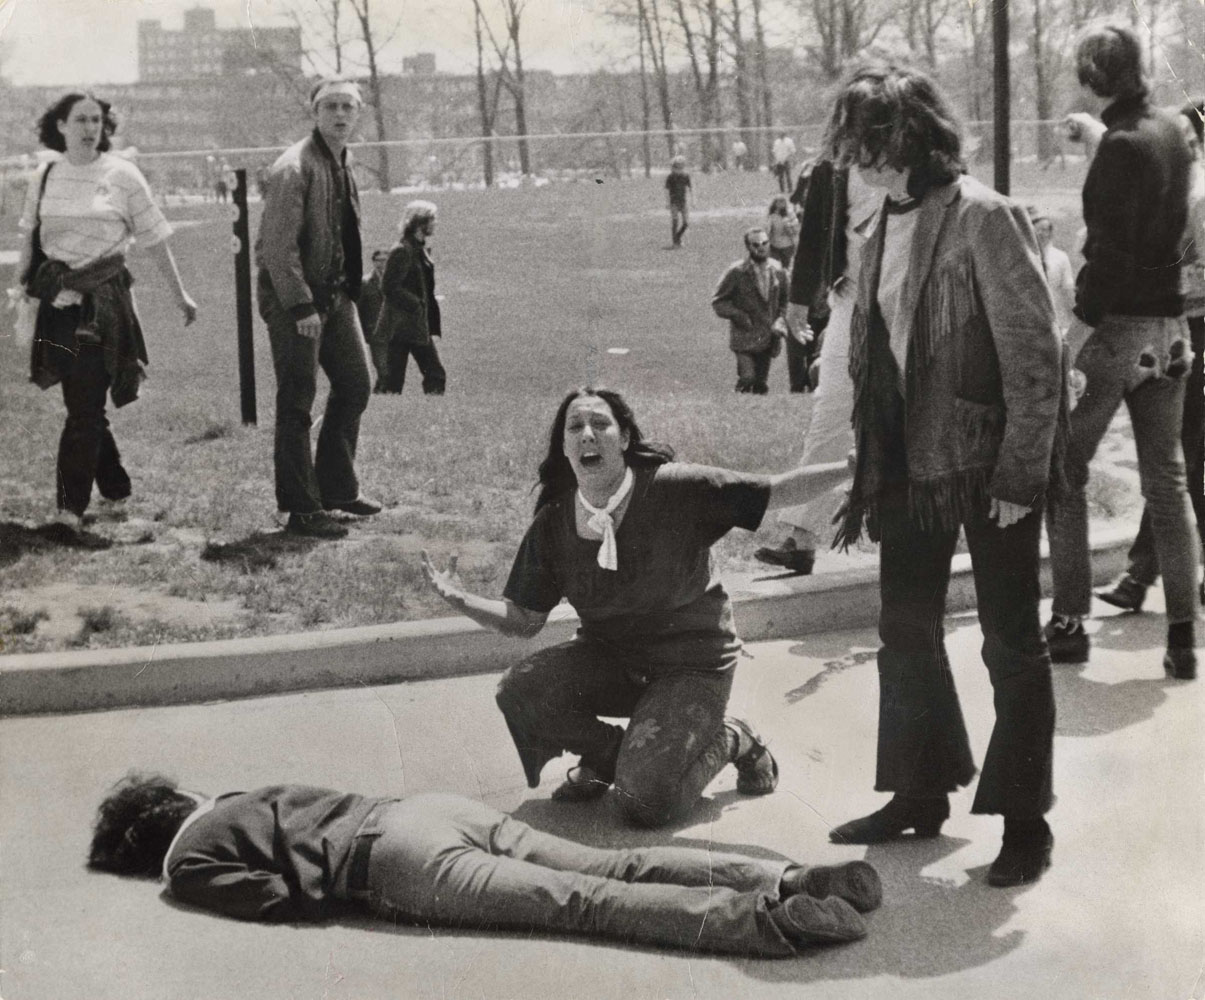 The Grieving Student at Kent State University, Ohio                               May 4, 1970                               John Filo, American, born 1948